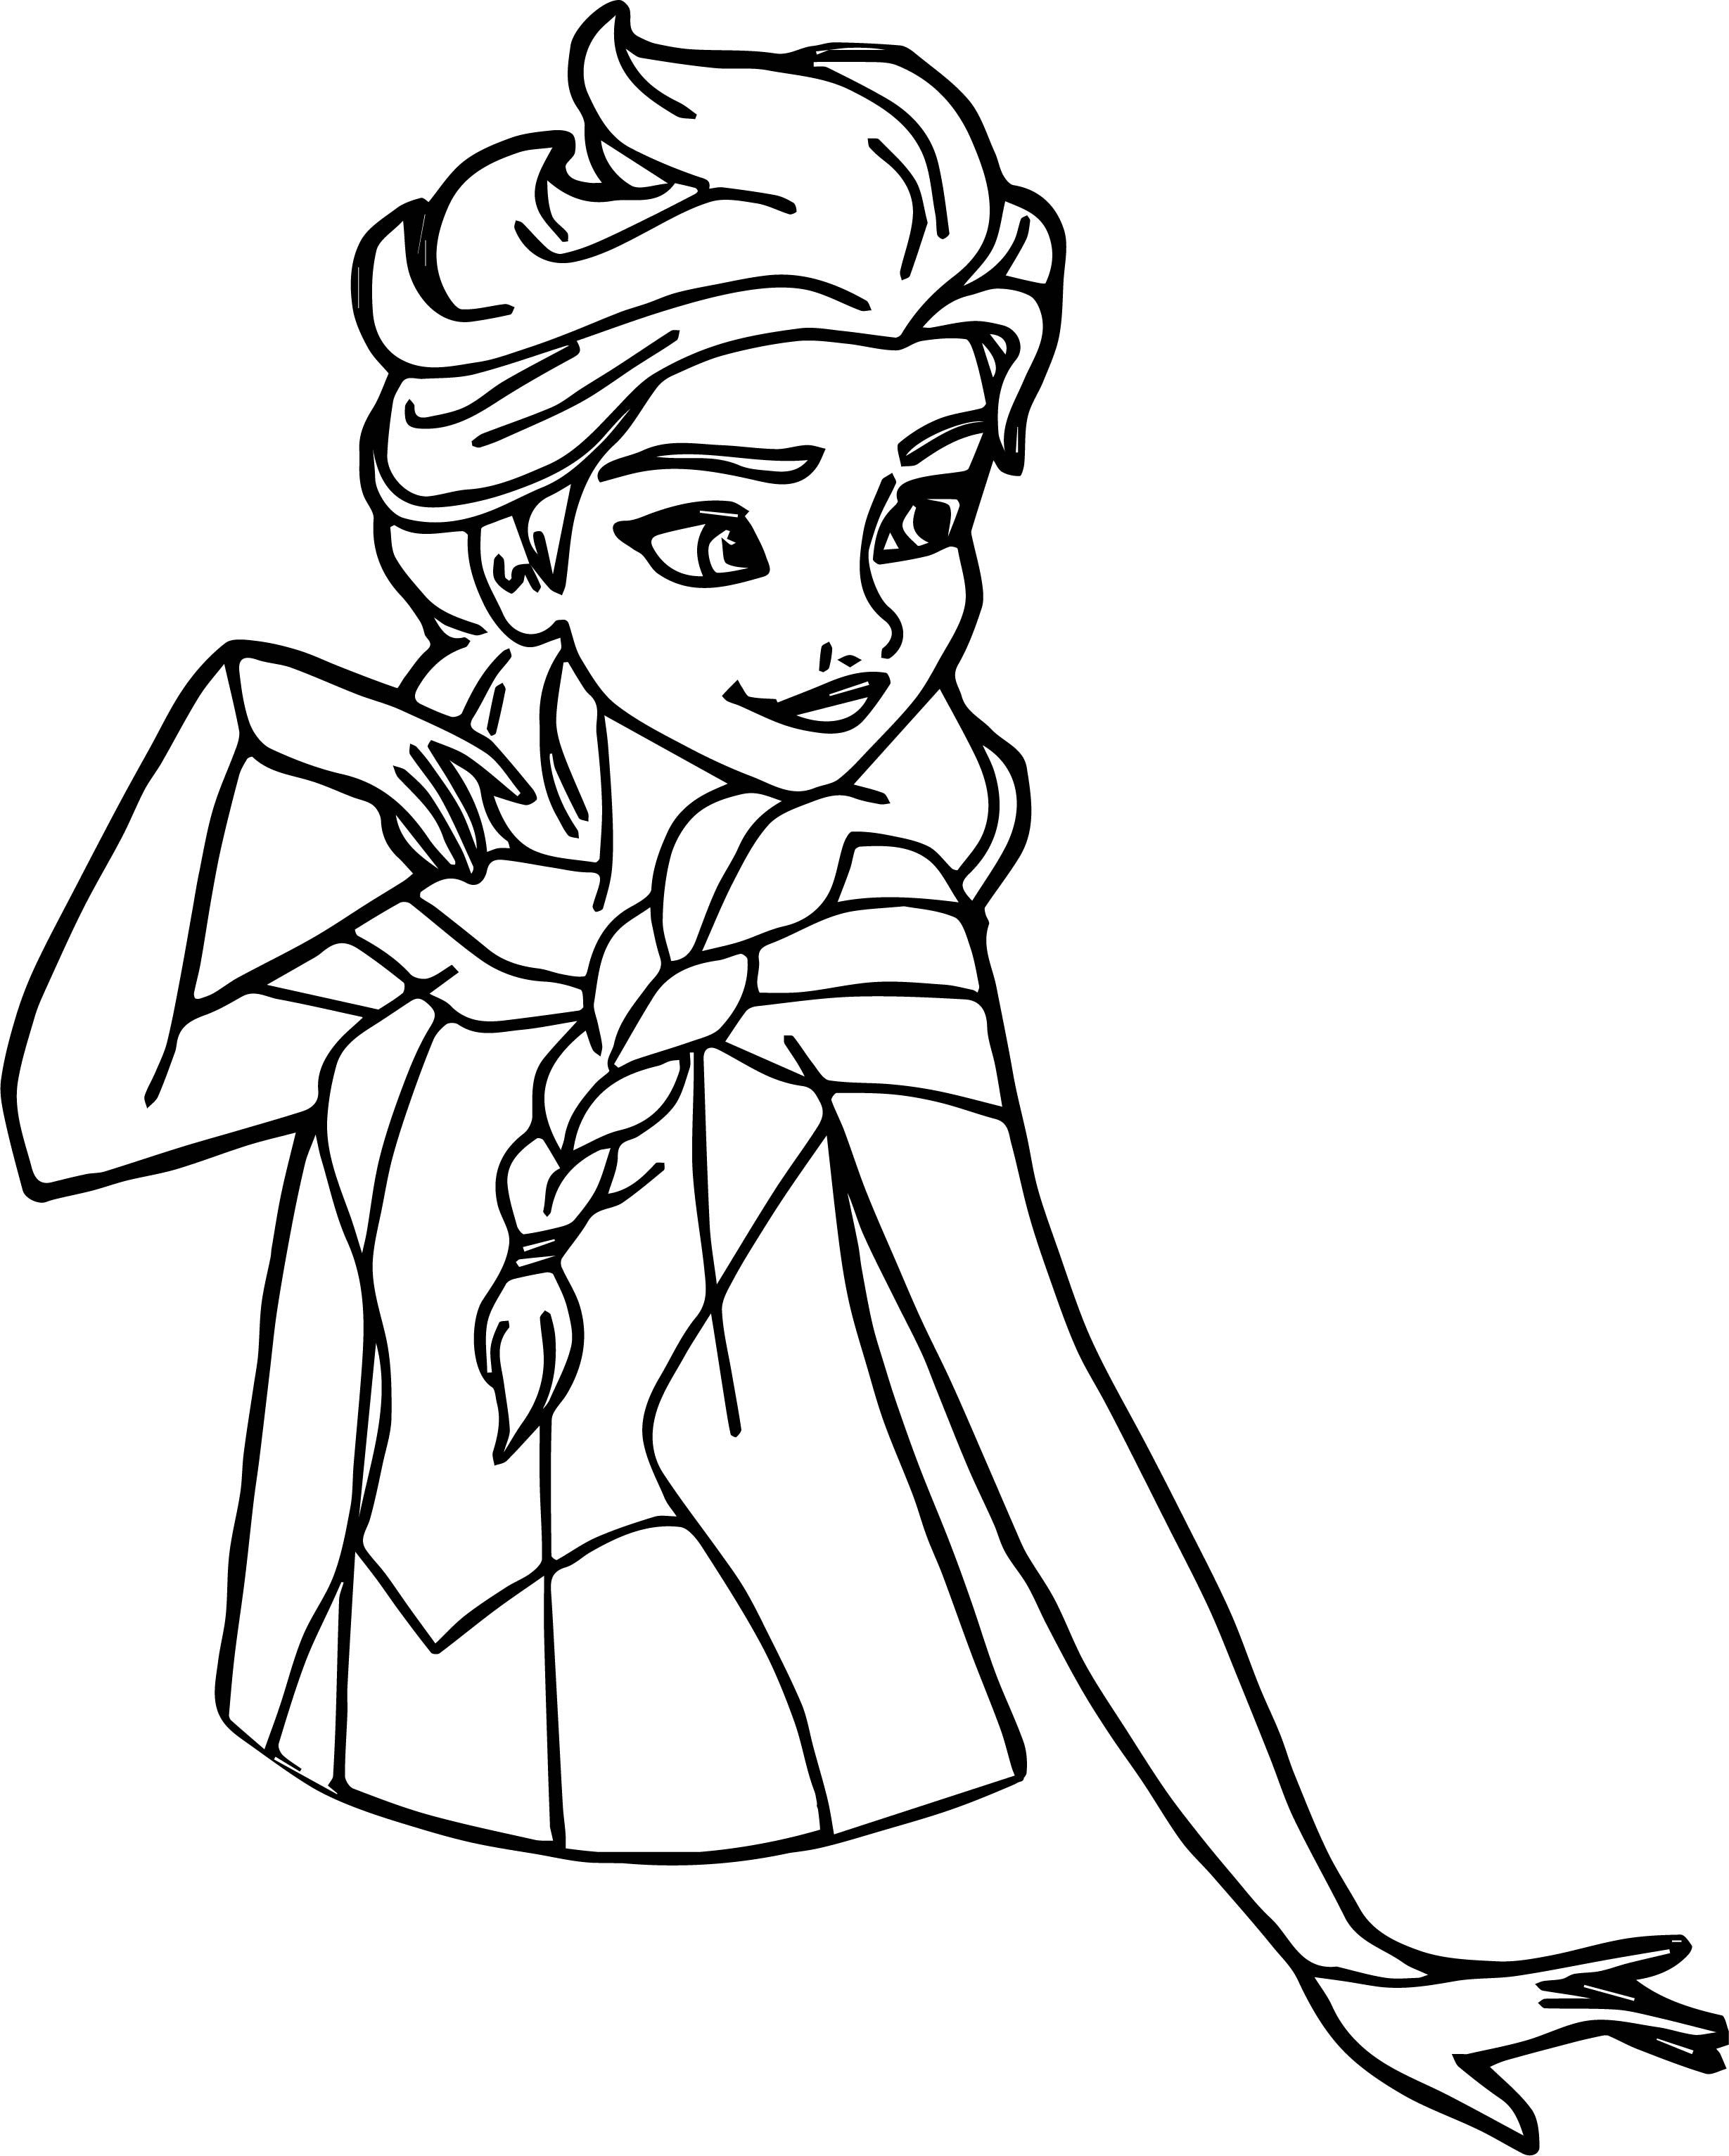 Cool Elsa Pose Coloring Page Elsa Coloring Pages Frozen Coloring Pages Frozen Coloring